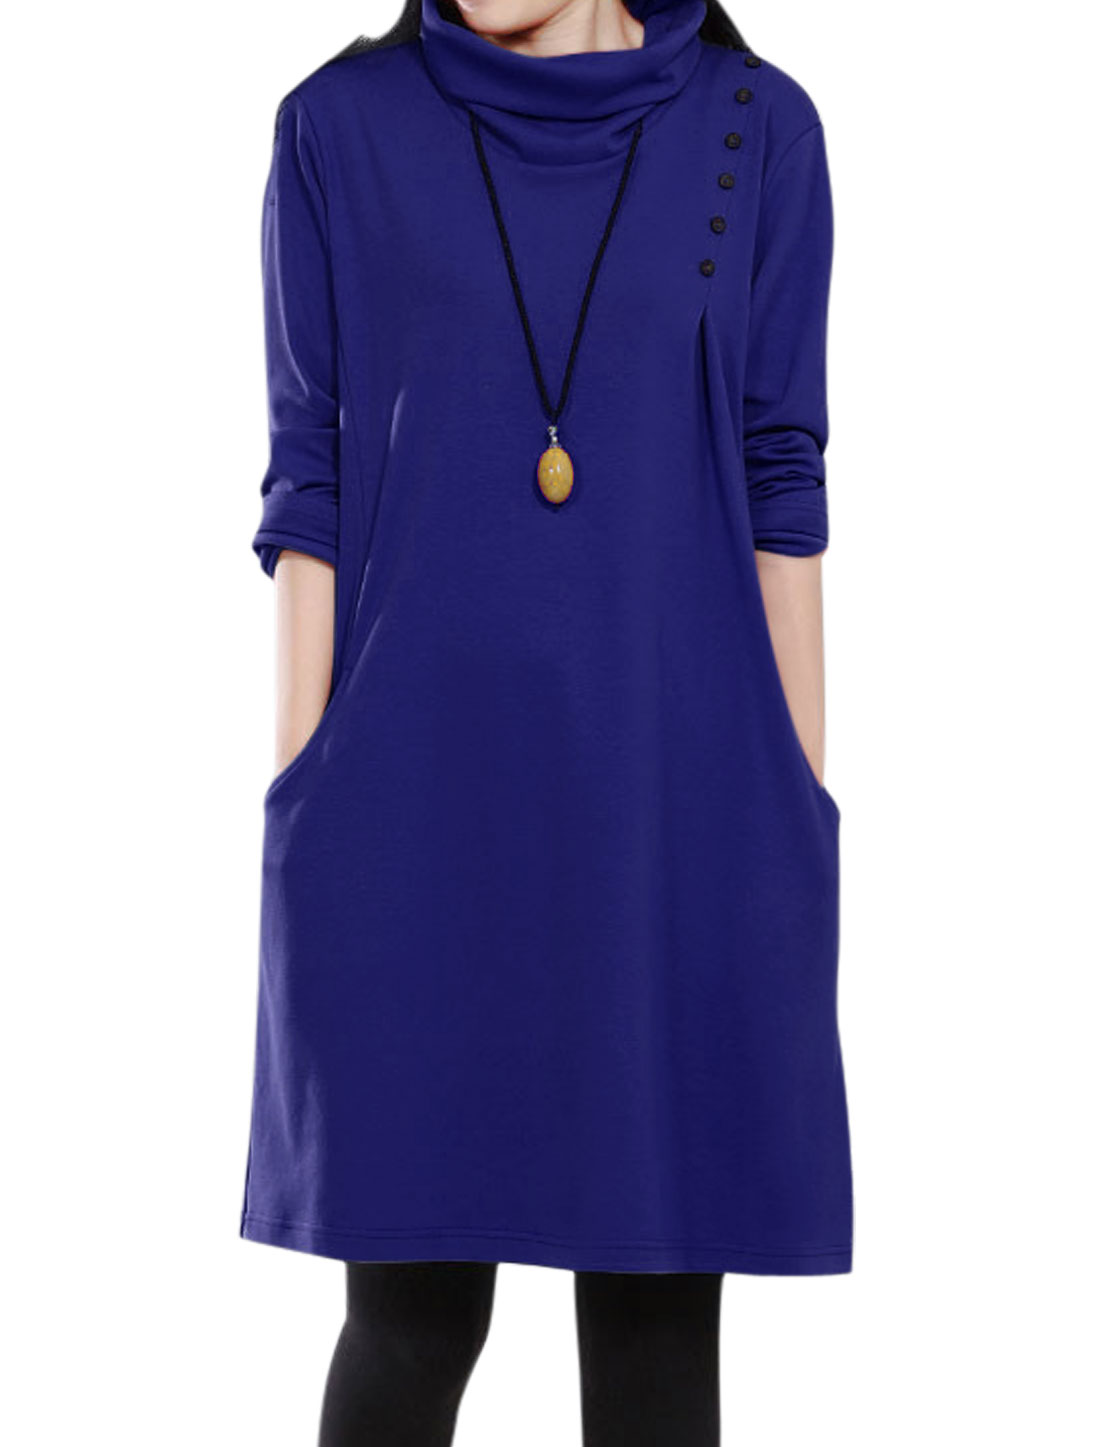 Ladies Blue Slipover Front Pockets Button Decor Loose Casaul Dress S